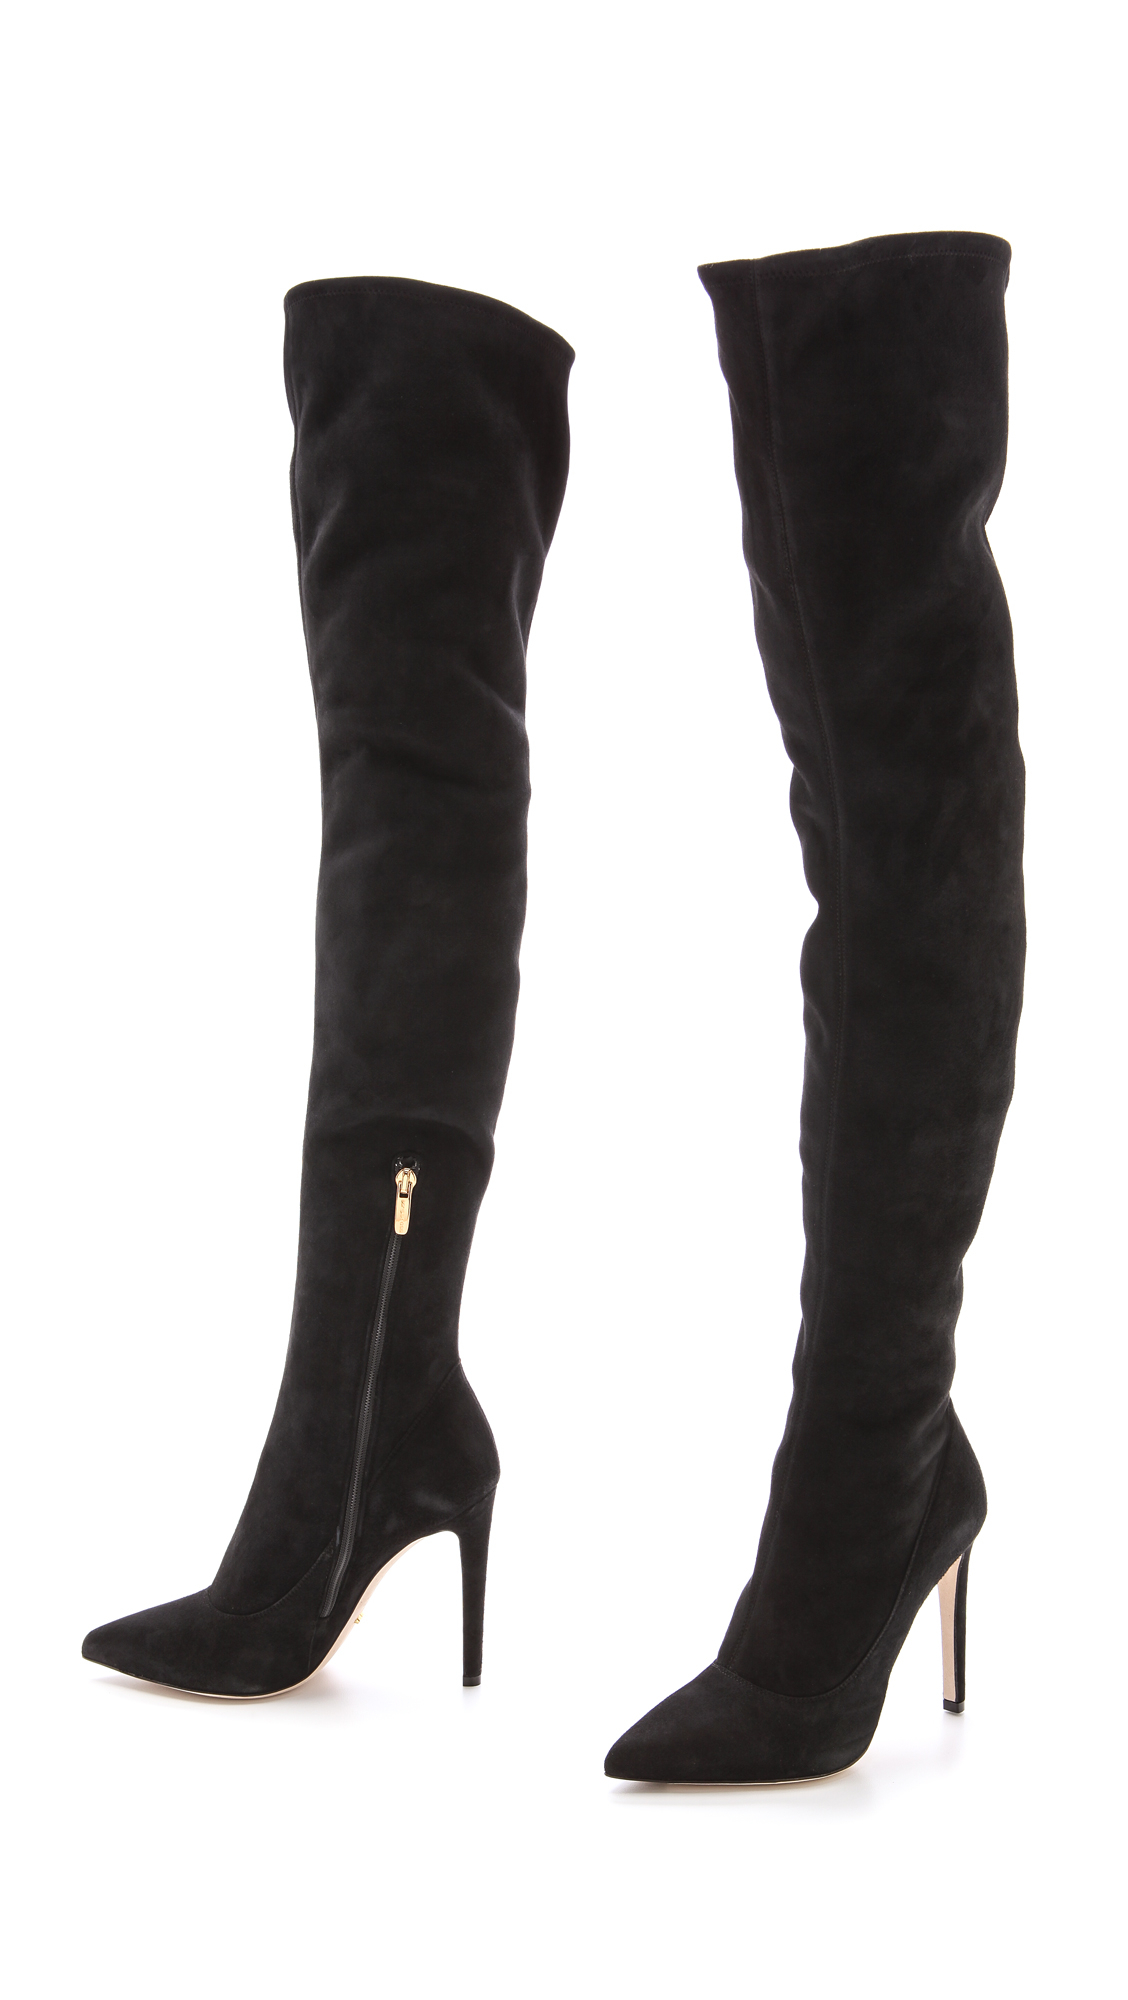 Black Over The Knee Suede Boots SPkf8RK8